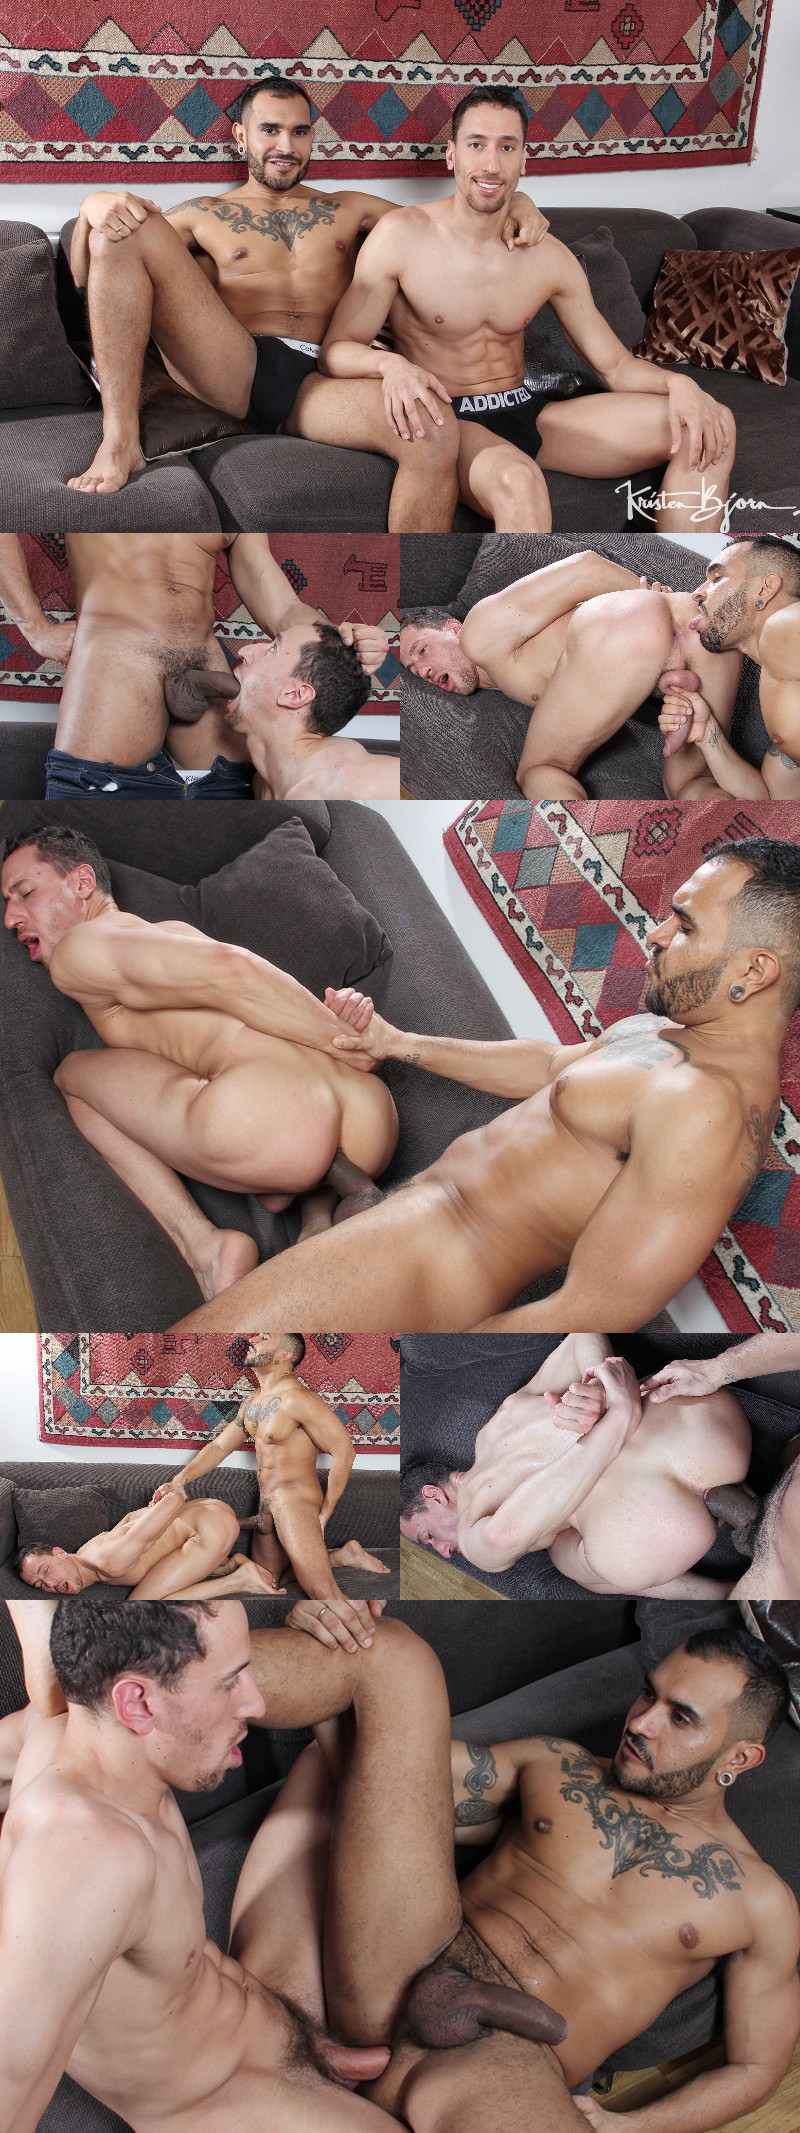 Lucio Saints Is Back For Round Two at Kristen Bjorn and He Bottoms, Too!